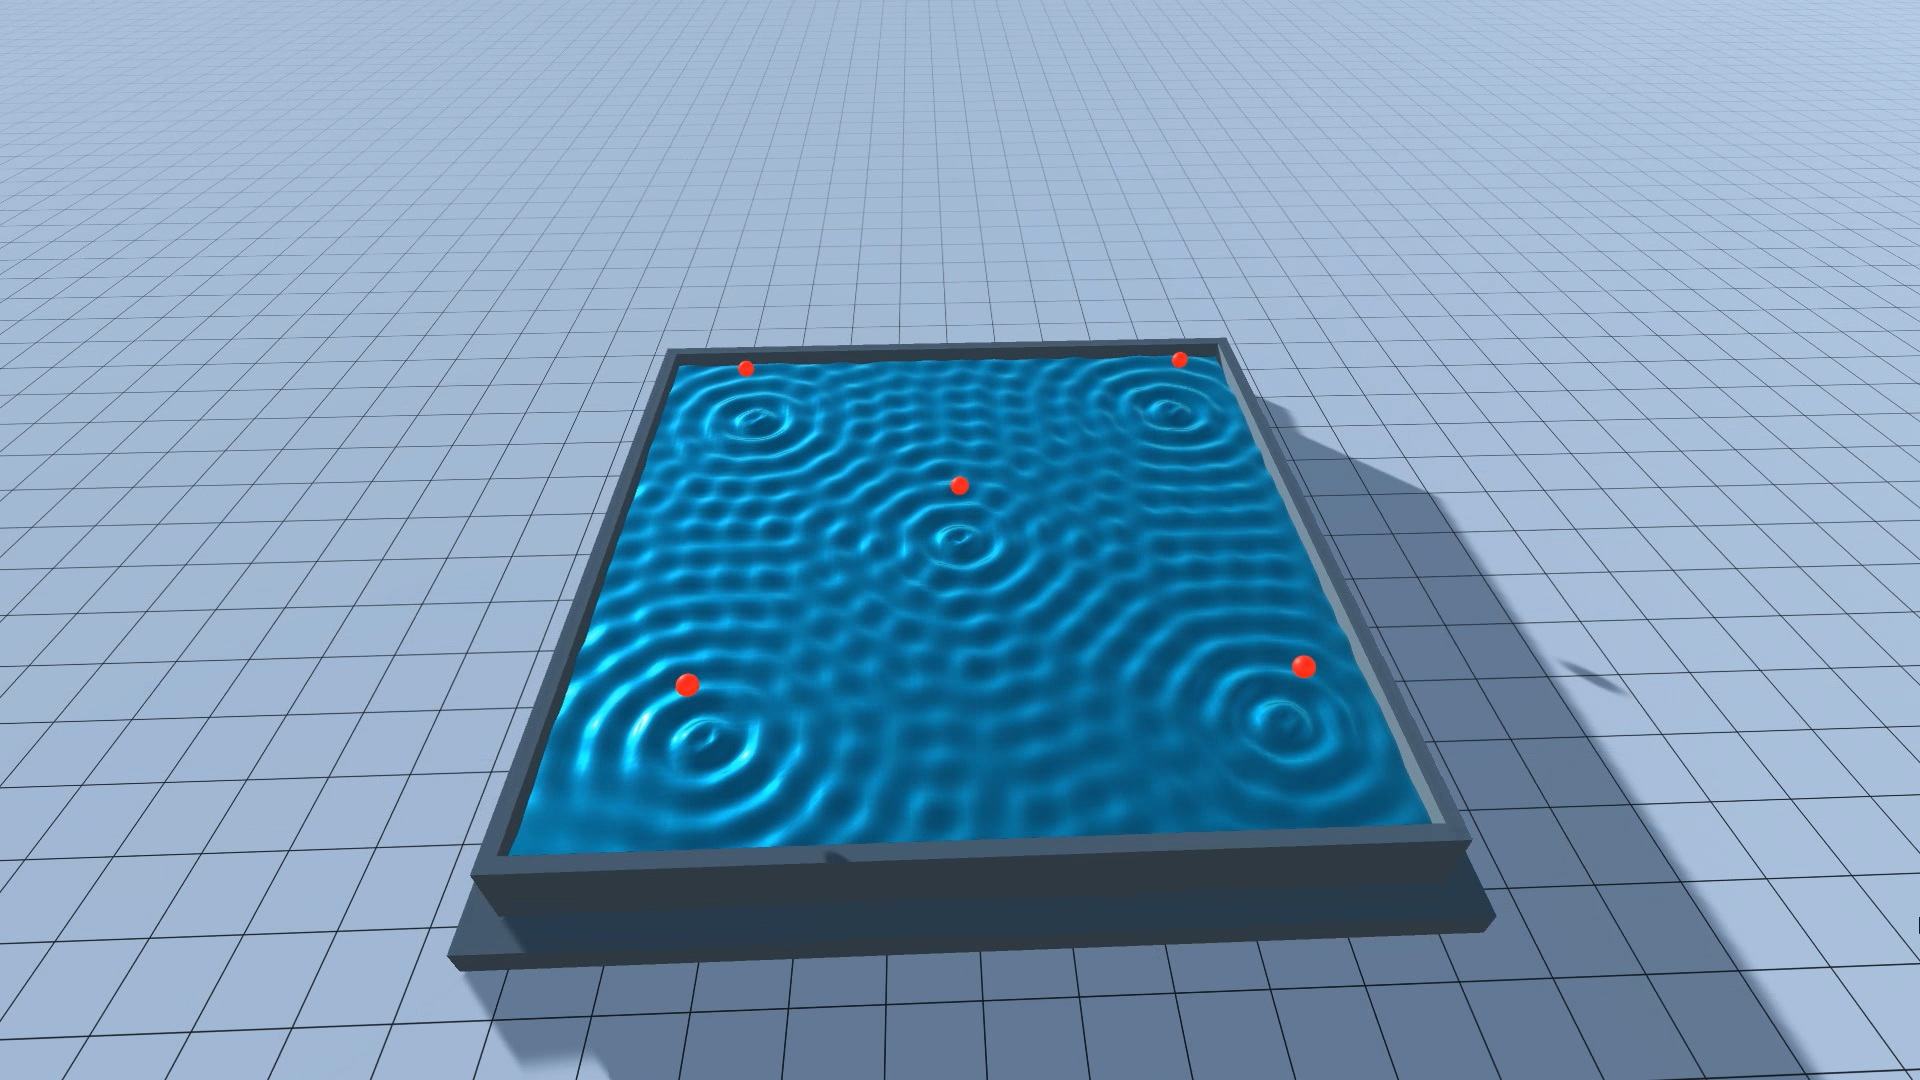 konsfik-procedural-water-surface-unity3d-snapshot-1